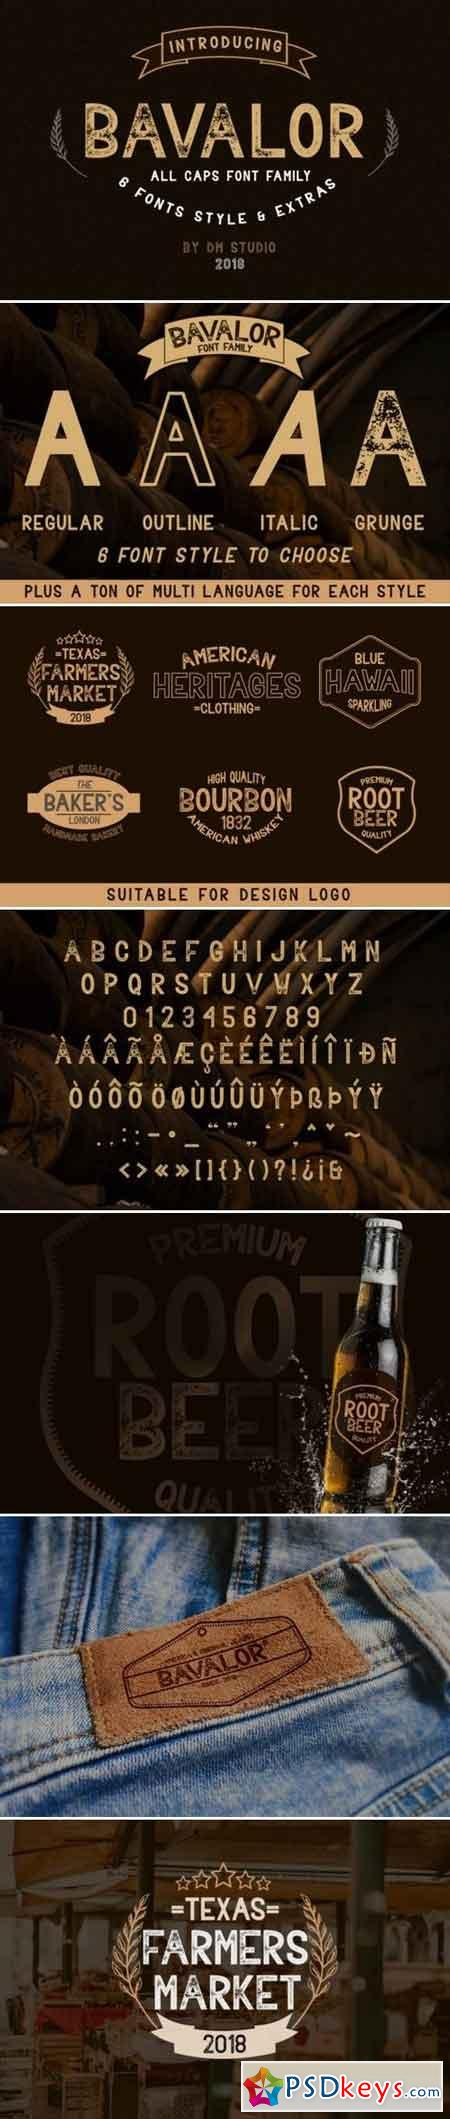 Bavalor - All Caps Font Family with Extras 185575